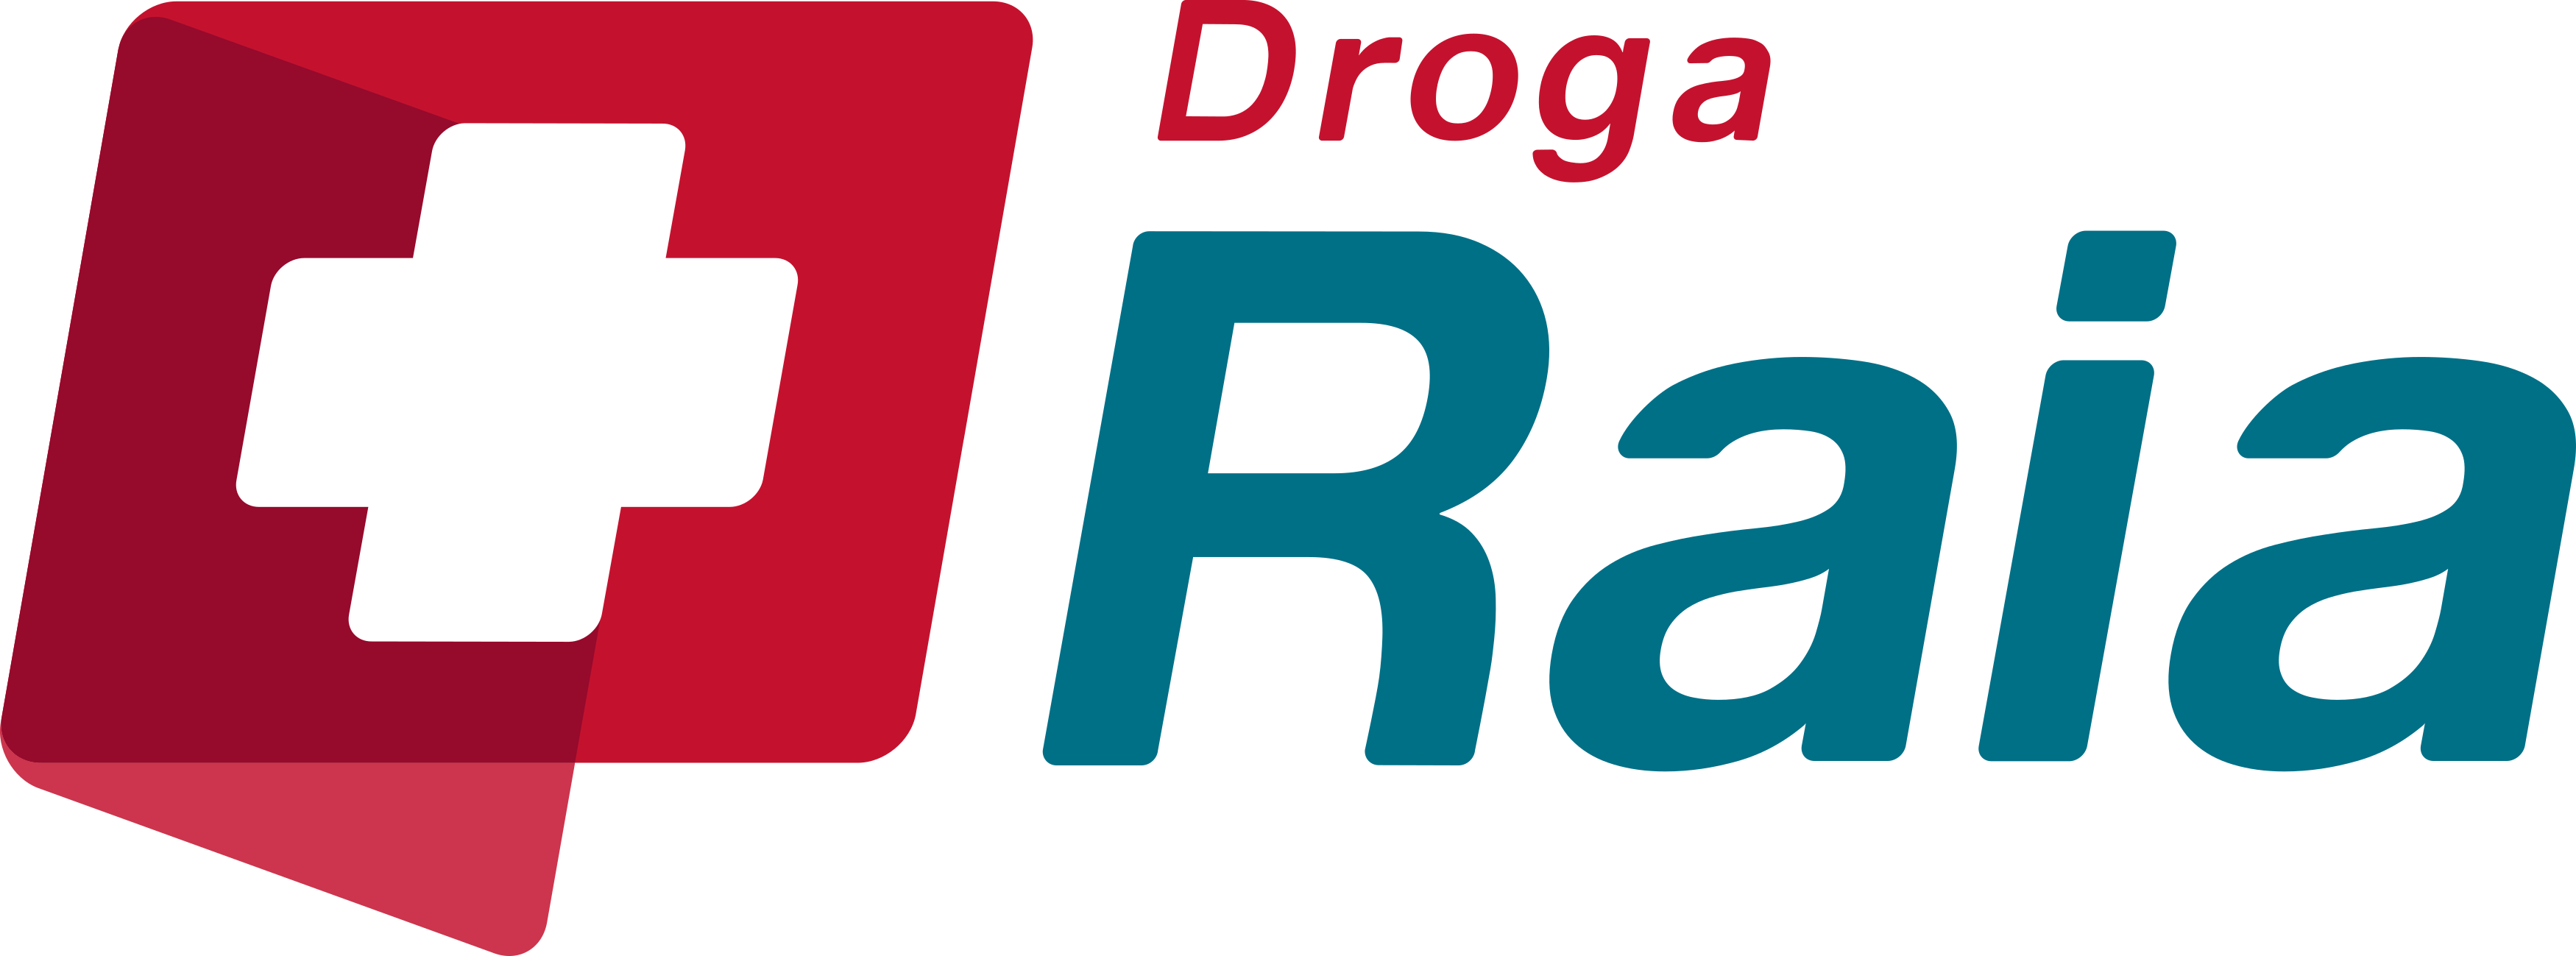 drogaraialogo png e vetor download de logotipos